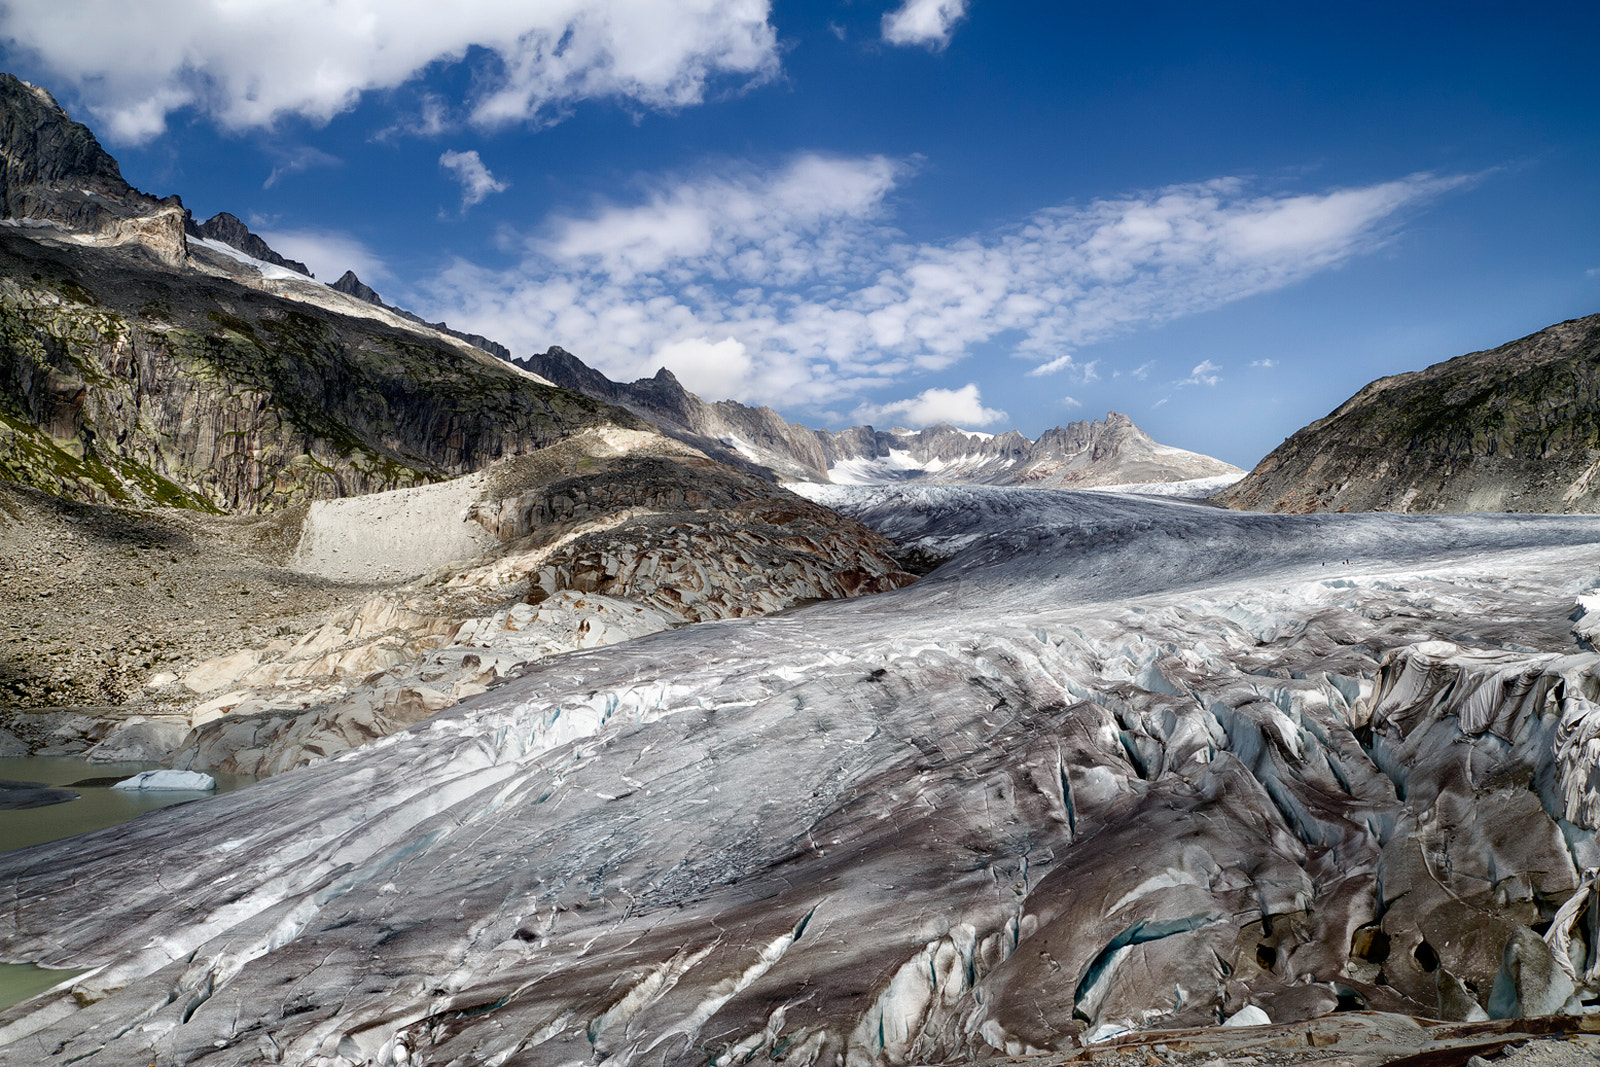 Photograph Rhone Glacier by José Antonio Sánchez on 500px